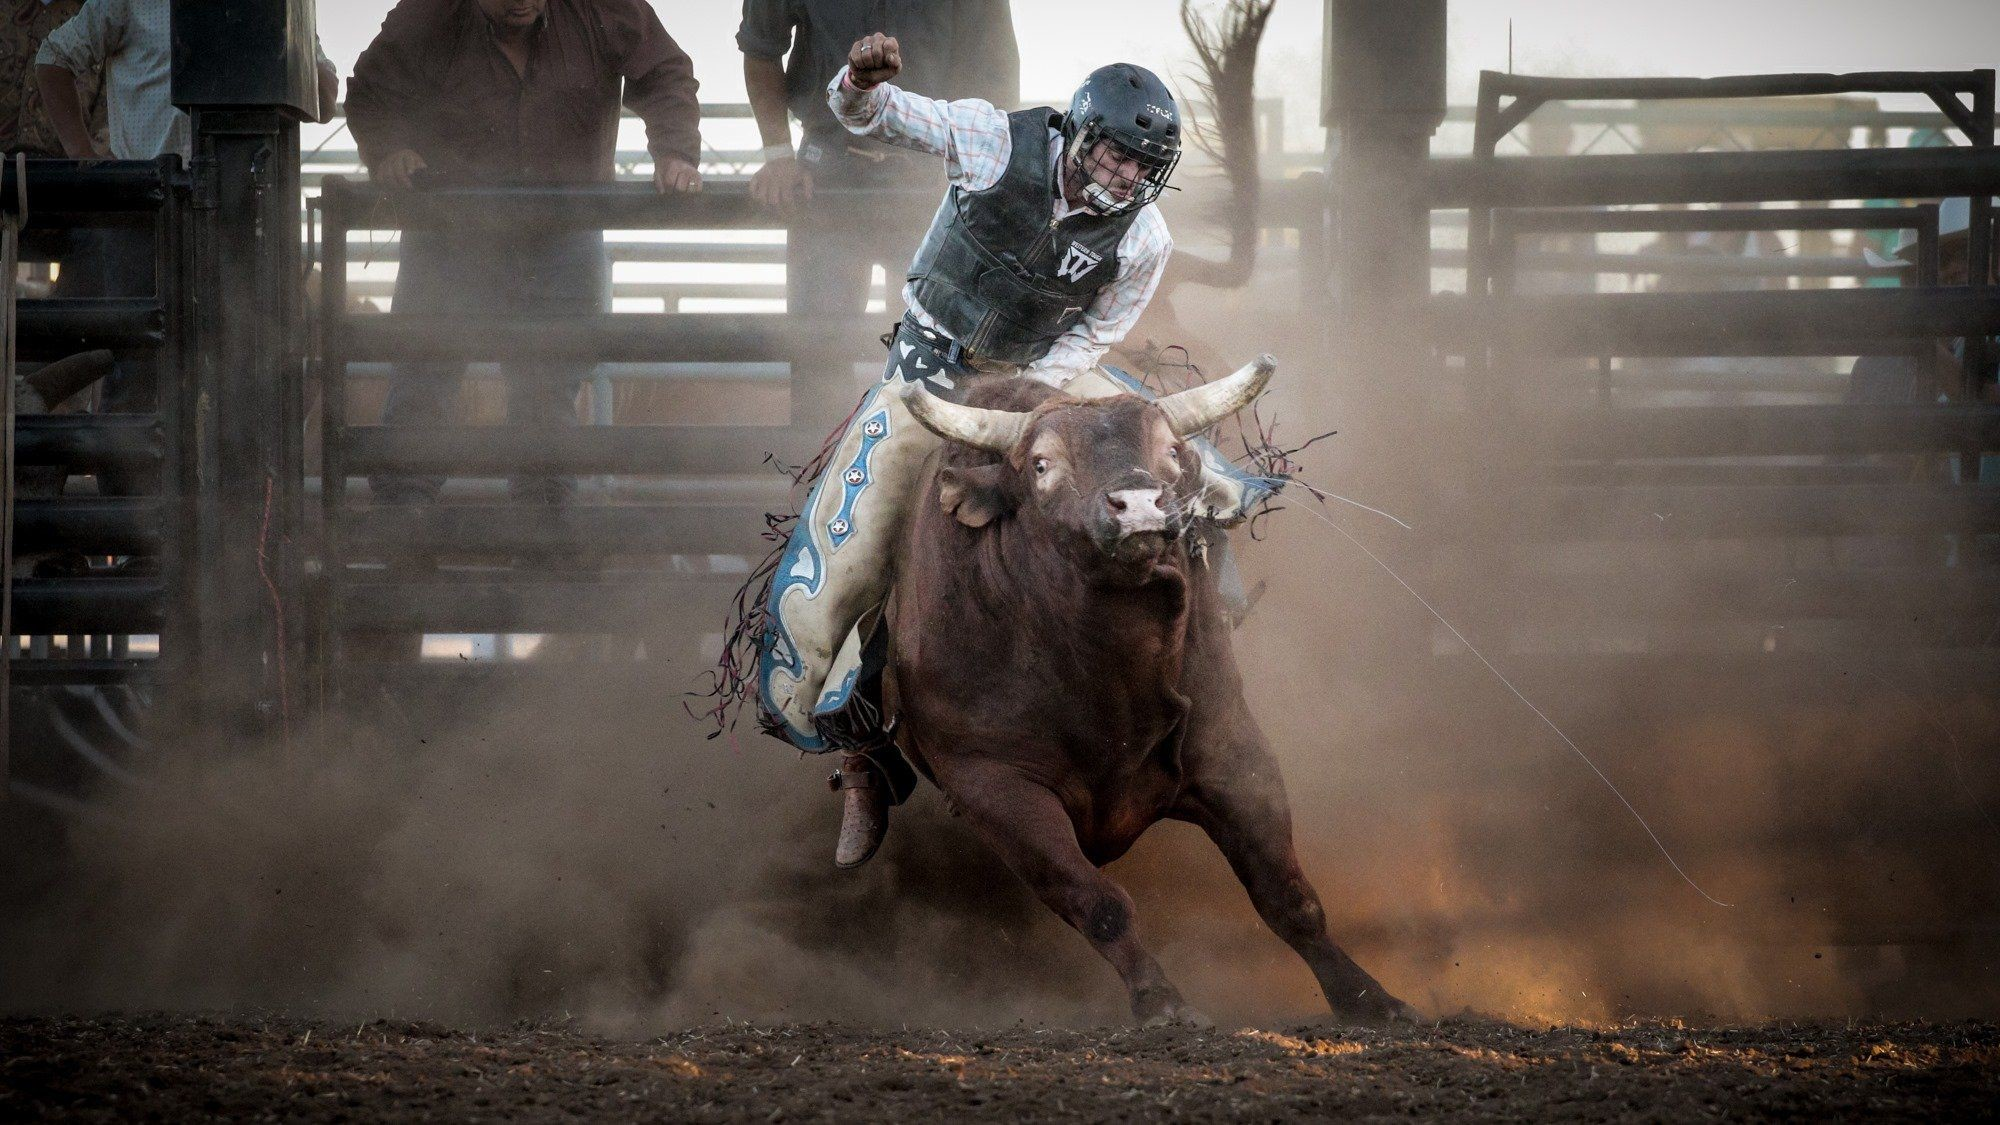 Bull riding backgrounds wallpapertag - Bull riding wallpapers ...